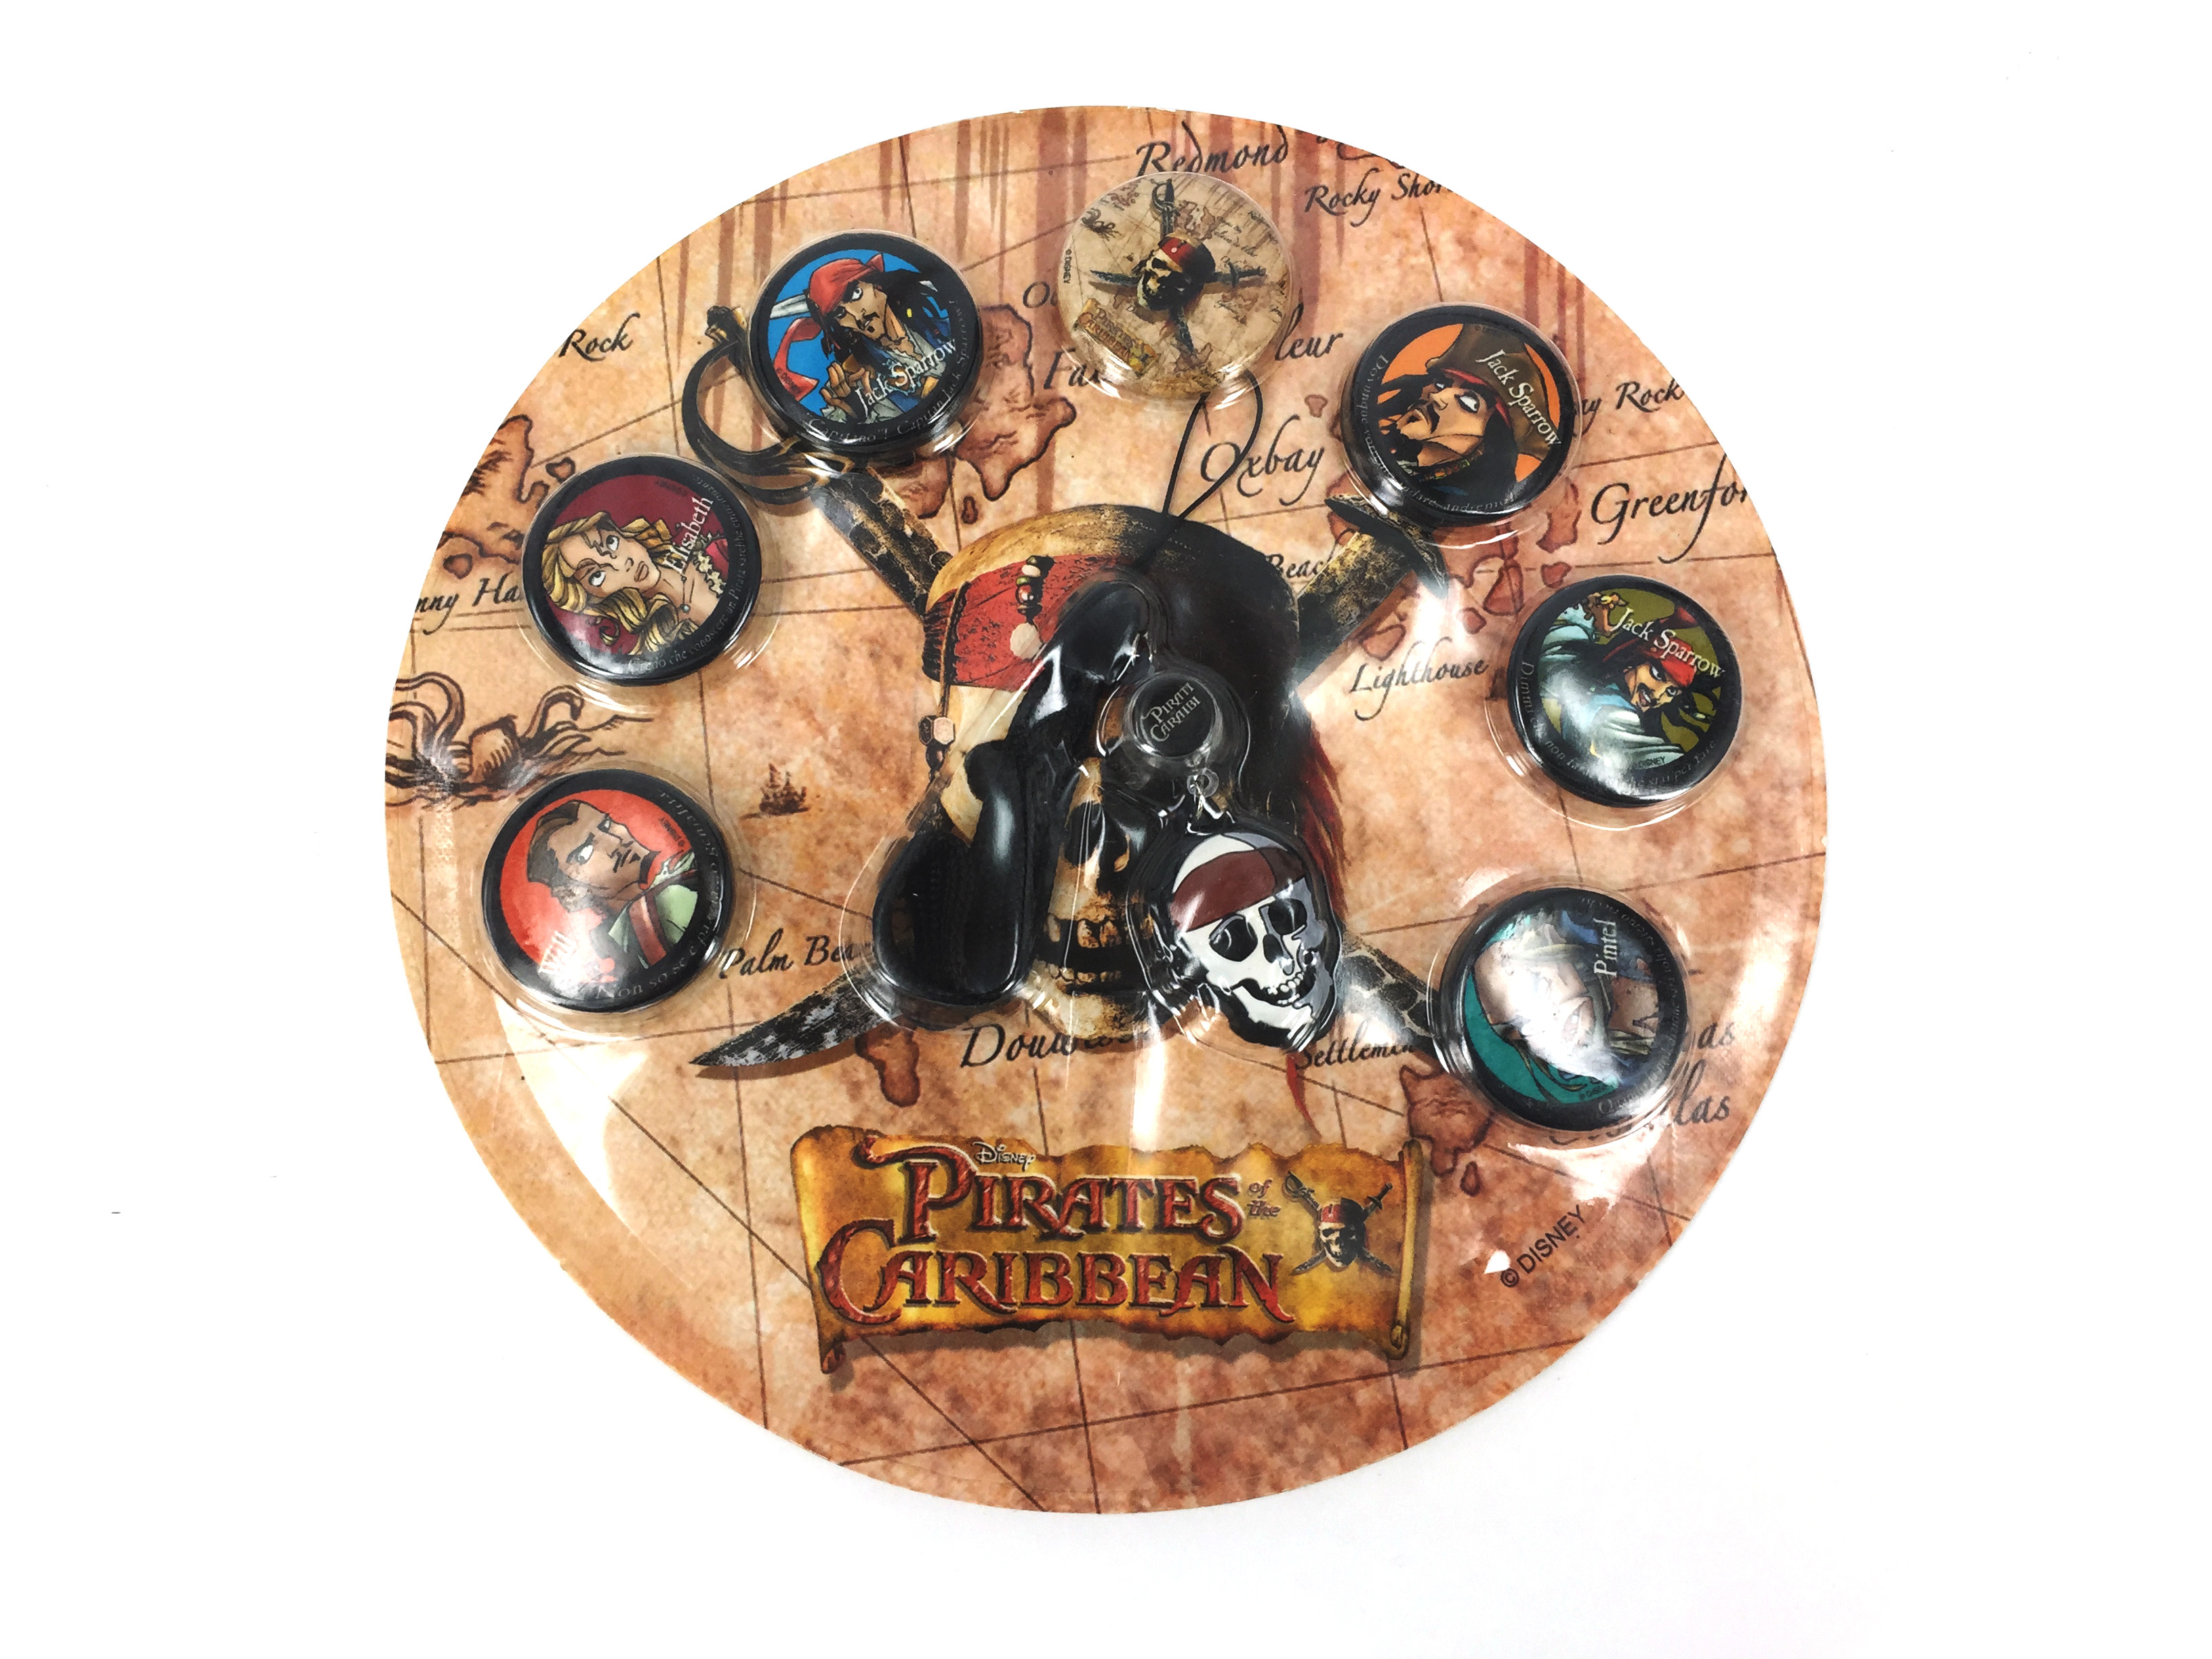 Pirates of Caribbean - Pins